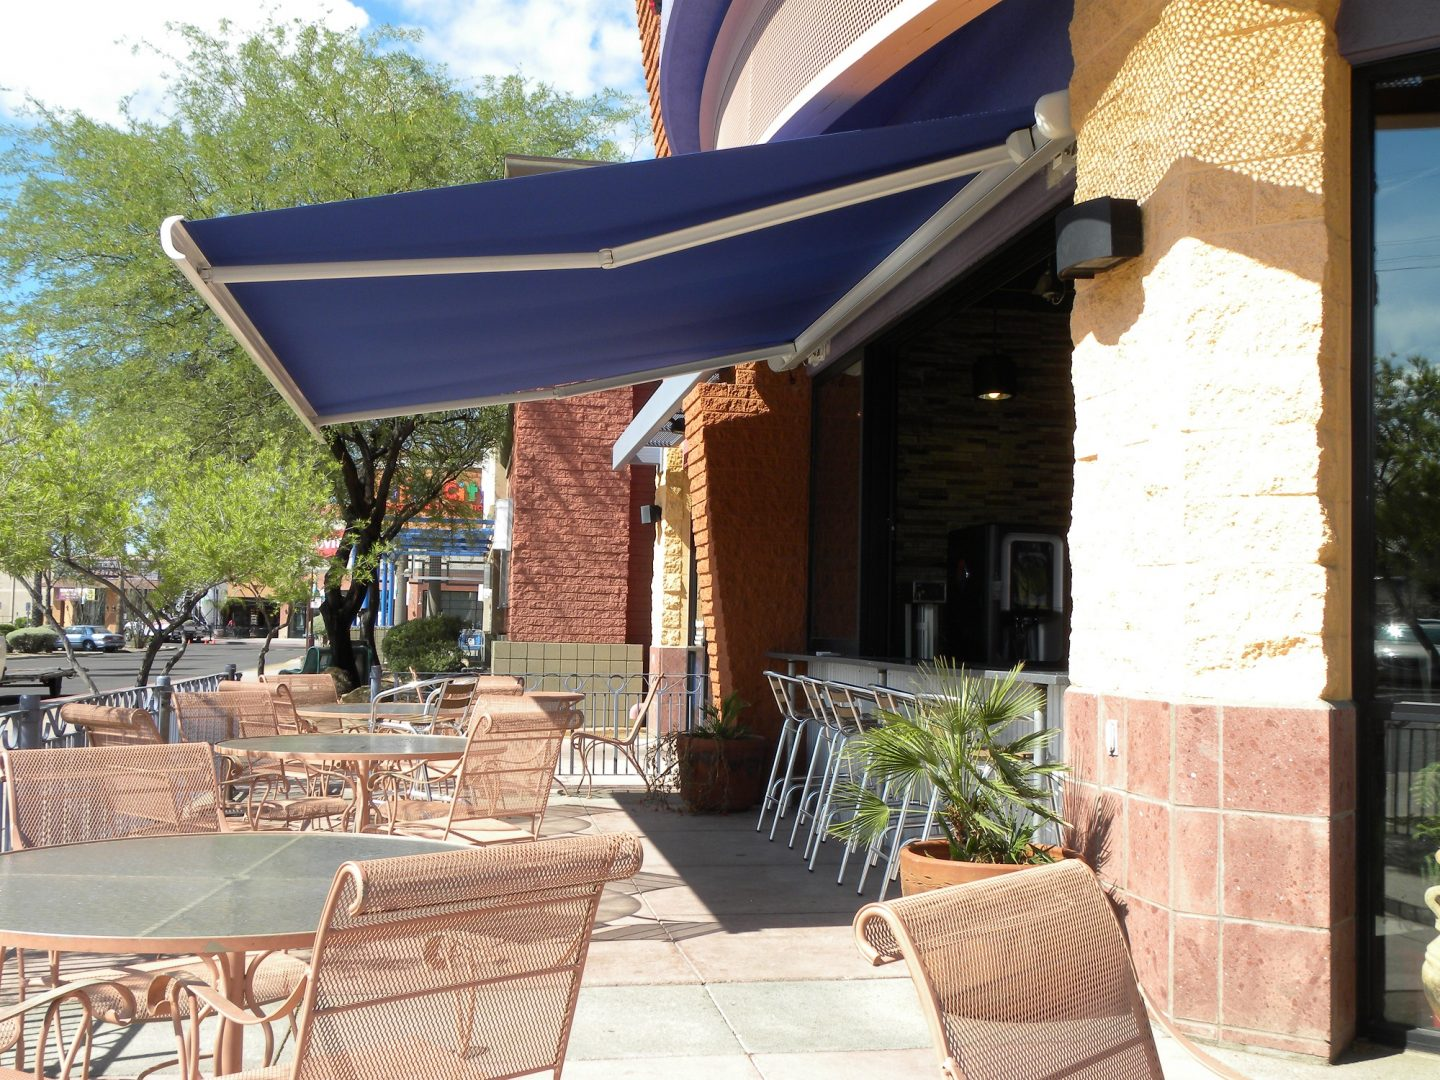 Commercial Retractable Awnings for your business.